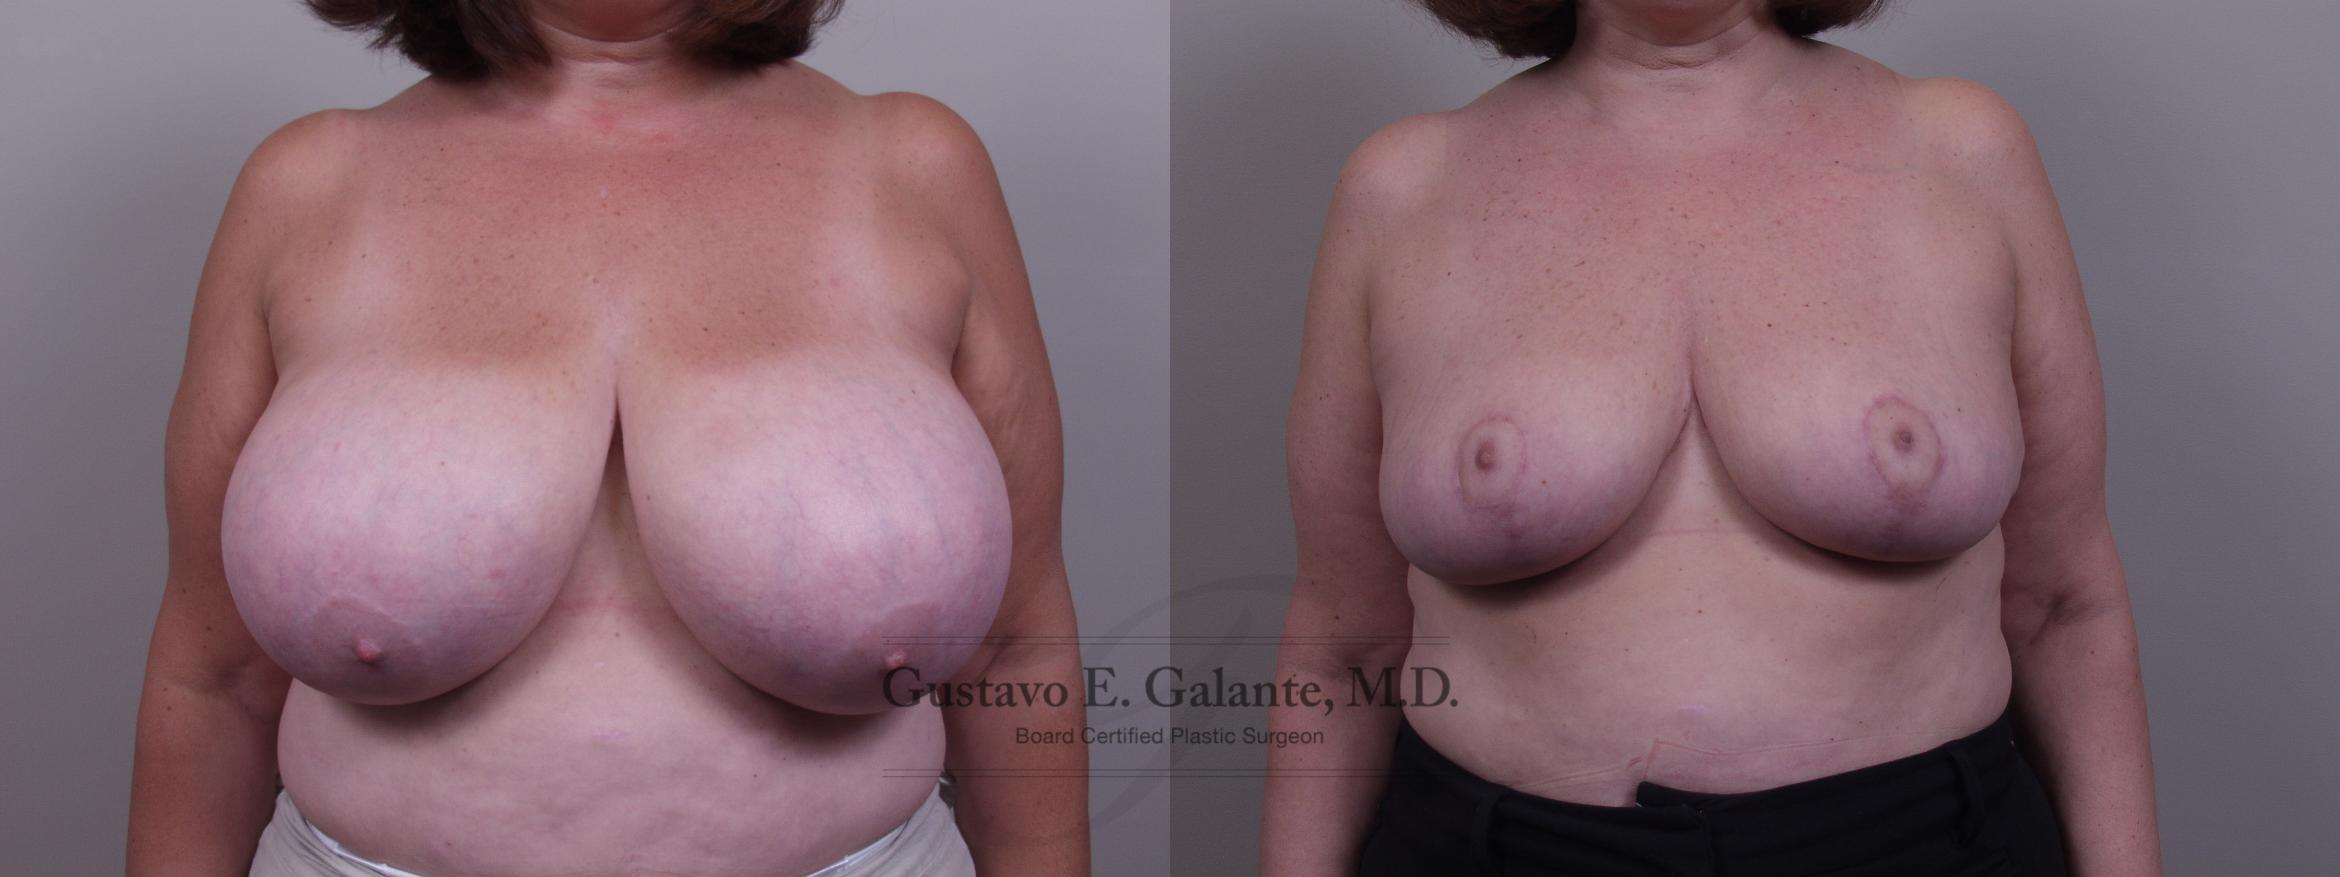 Breast Reduction Case 69 Before & After View #1 | Valparaiso & Schererville, IN | Gustavo E. Galante, MD